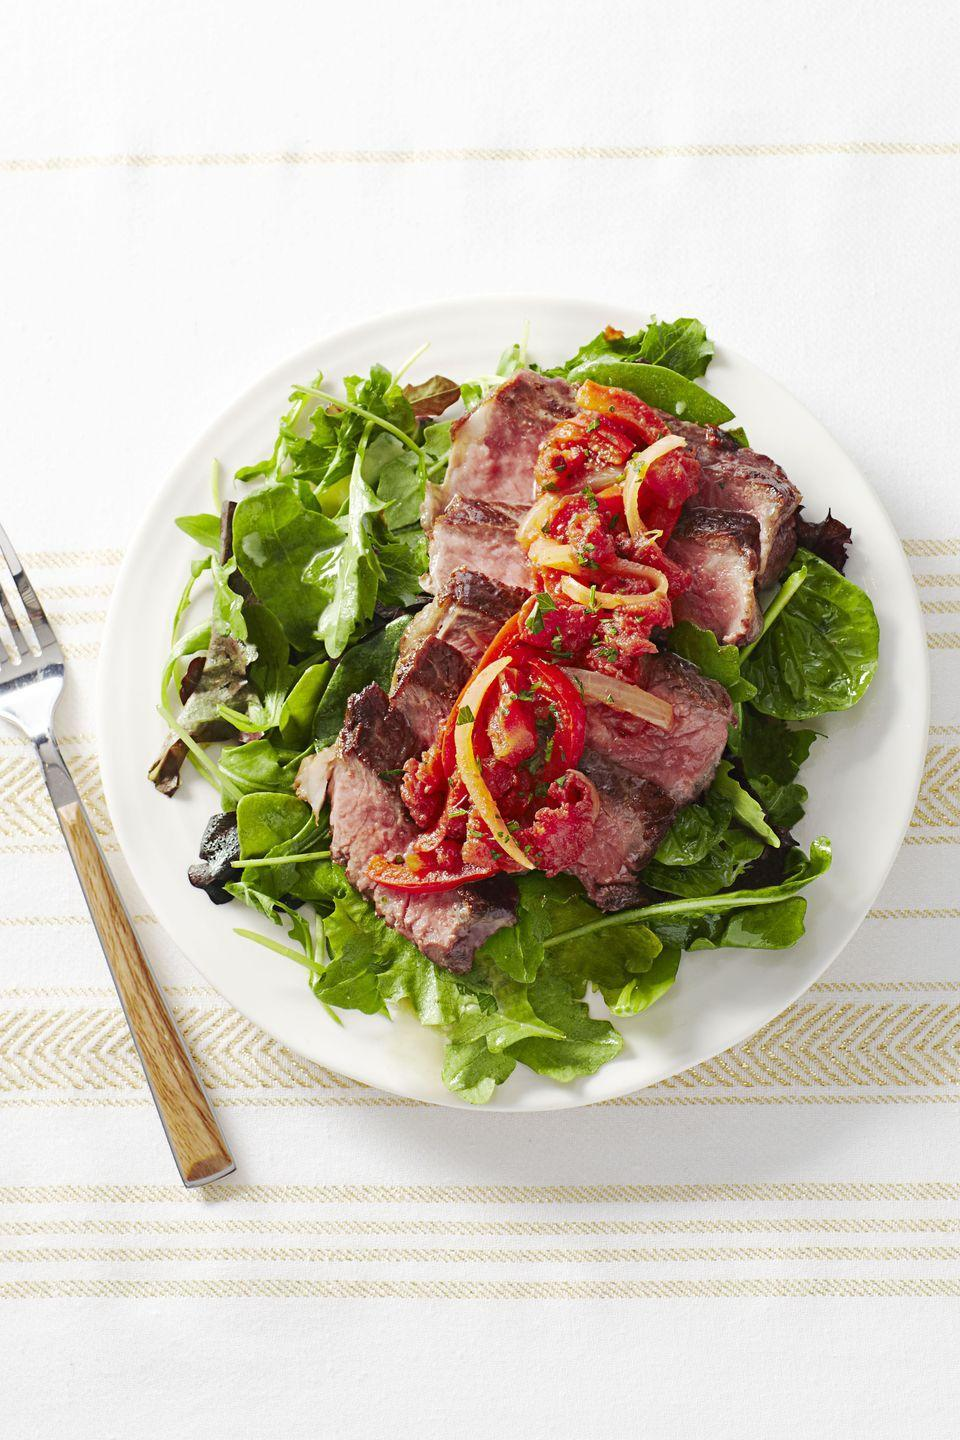 """<p>This easy dinner is a Paleo dieter's dream — all the protein, none of the processed foods <em>and </em>it's ready in 10. </p><p><em><a href=""""https://www.goodhousekeeping.com/food-recipes/a16803/steak-pizzaiolo-recipe-ghk0115/"""" rel=""""nofollow noopener"""" target=""""_blank"""" data-ylk=""""slk:Get the recipe for Steak Pizzaiolo »"""" class=""""link rapid-noclick-resp"""">Get the recipe for Steak Pizzaiolo »</a></em> </p>"""